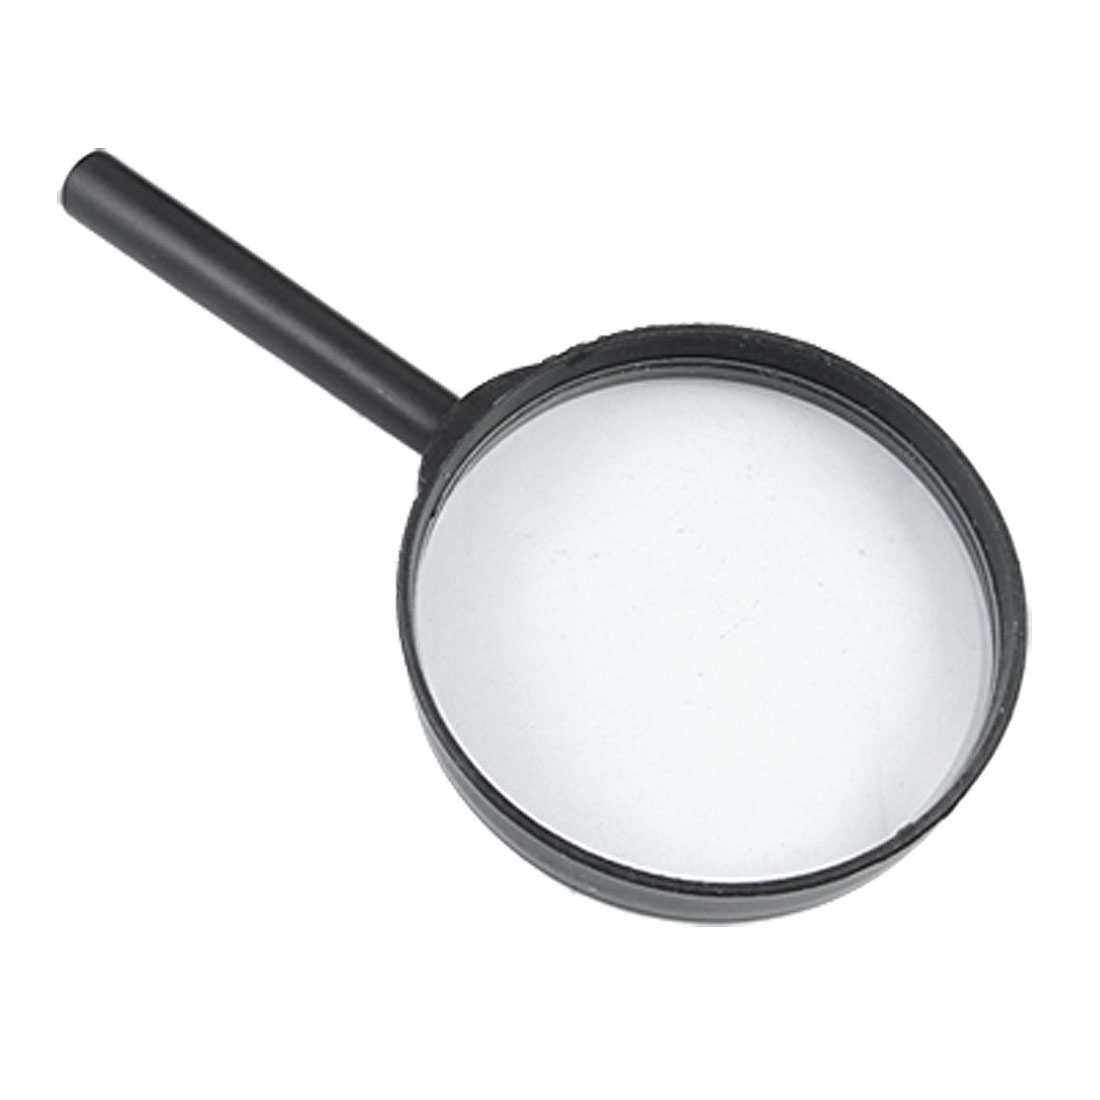 75mm Black Portable 2X Magnifying Glass Magnifier for Reading